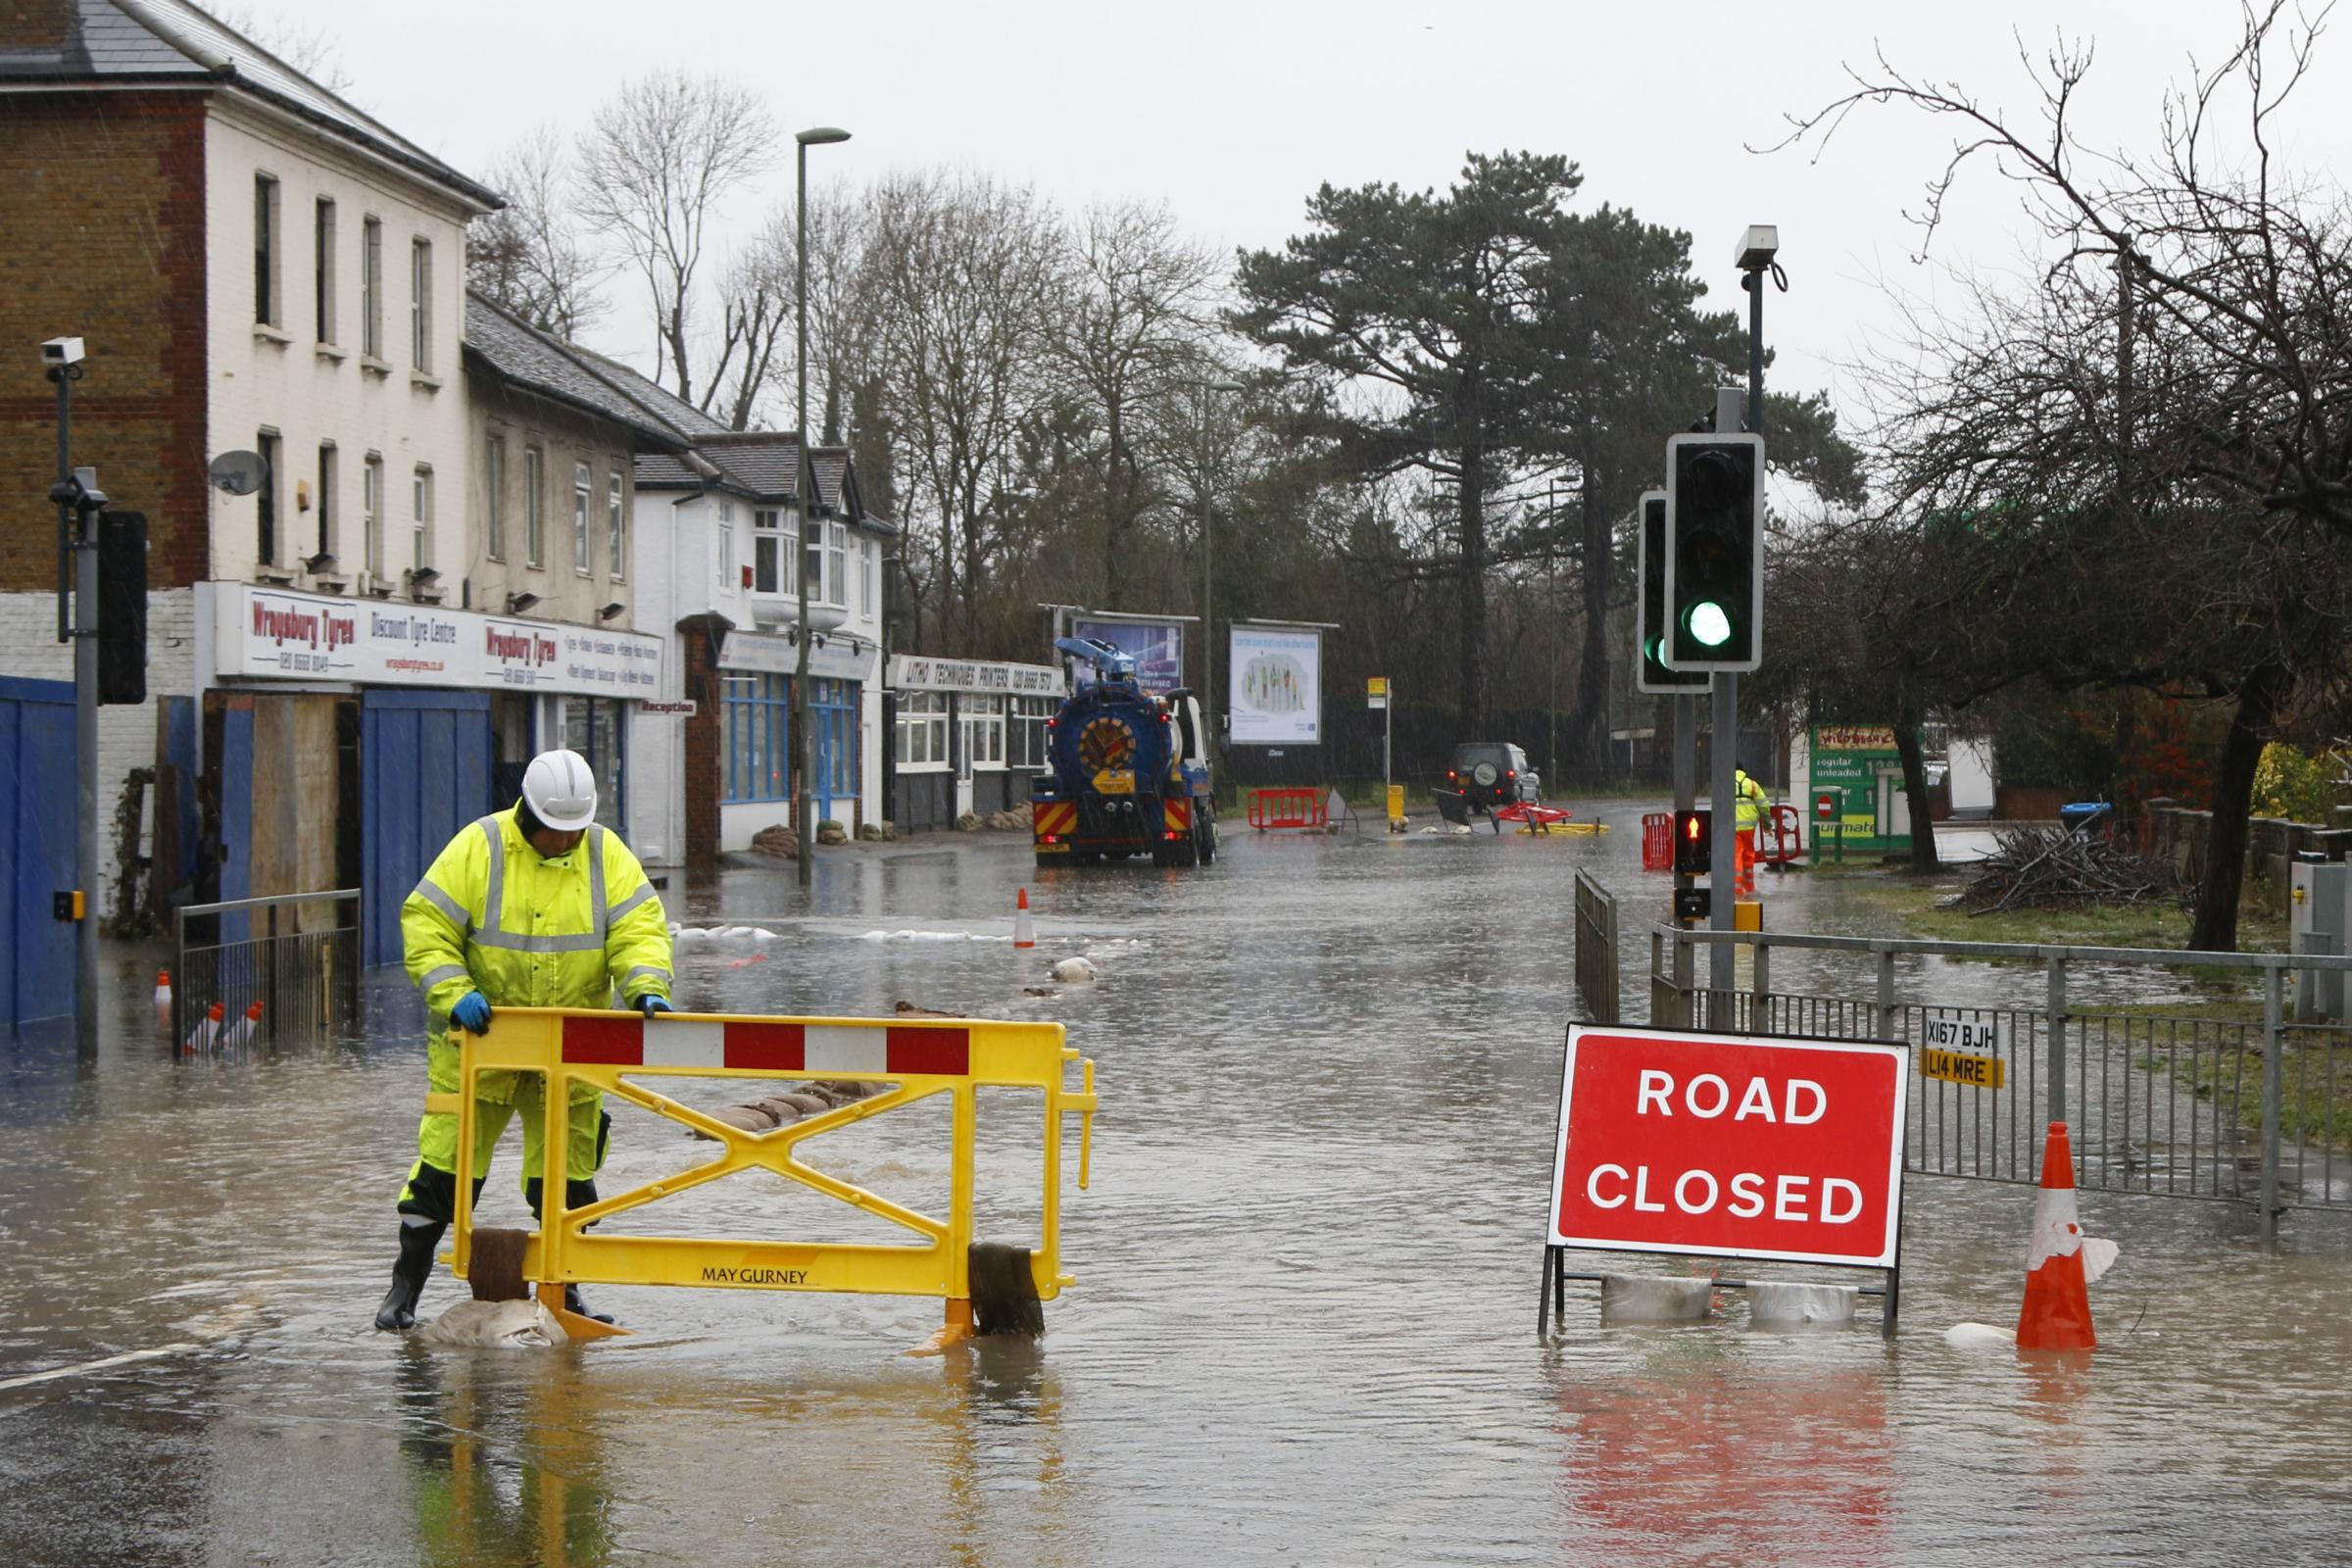 Flooding affected parts of Croydon earlier this year